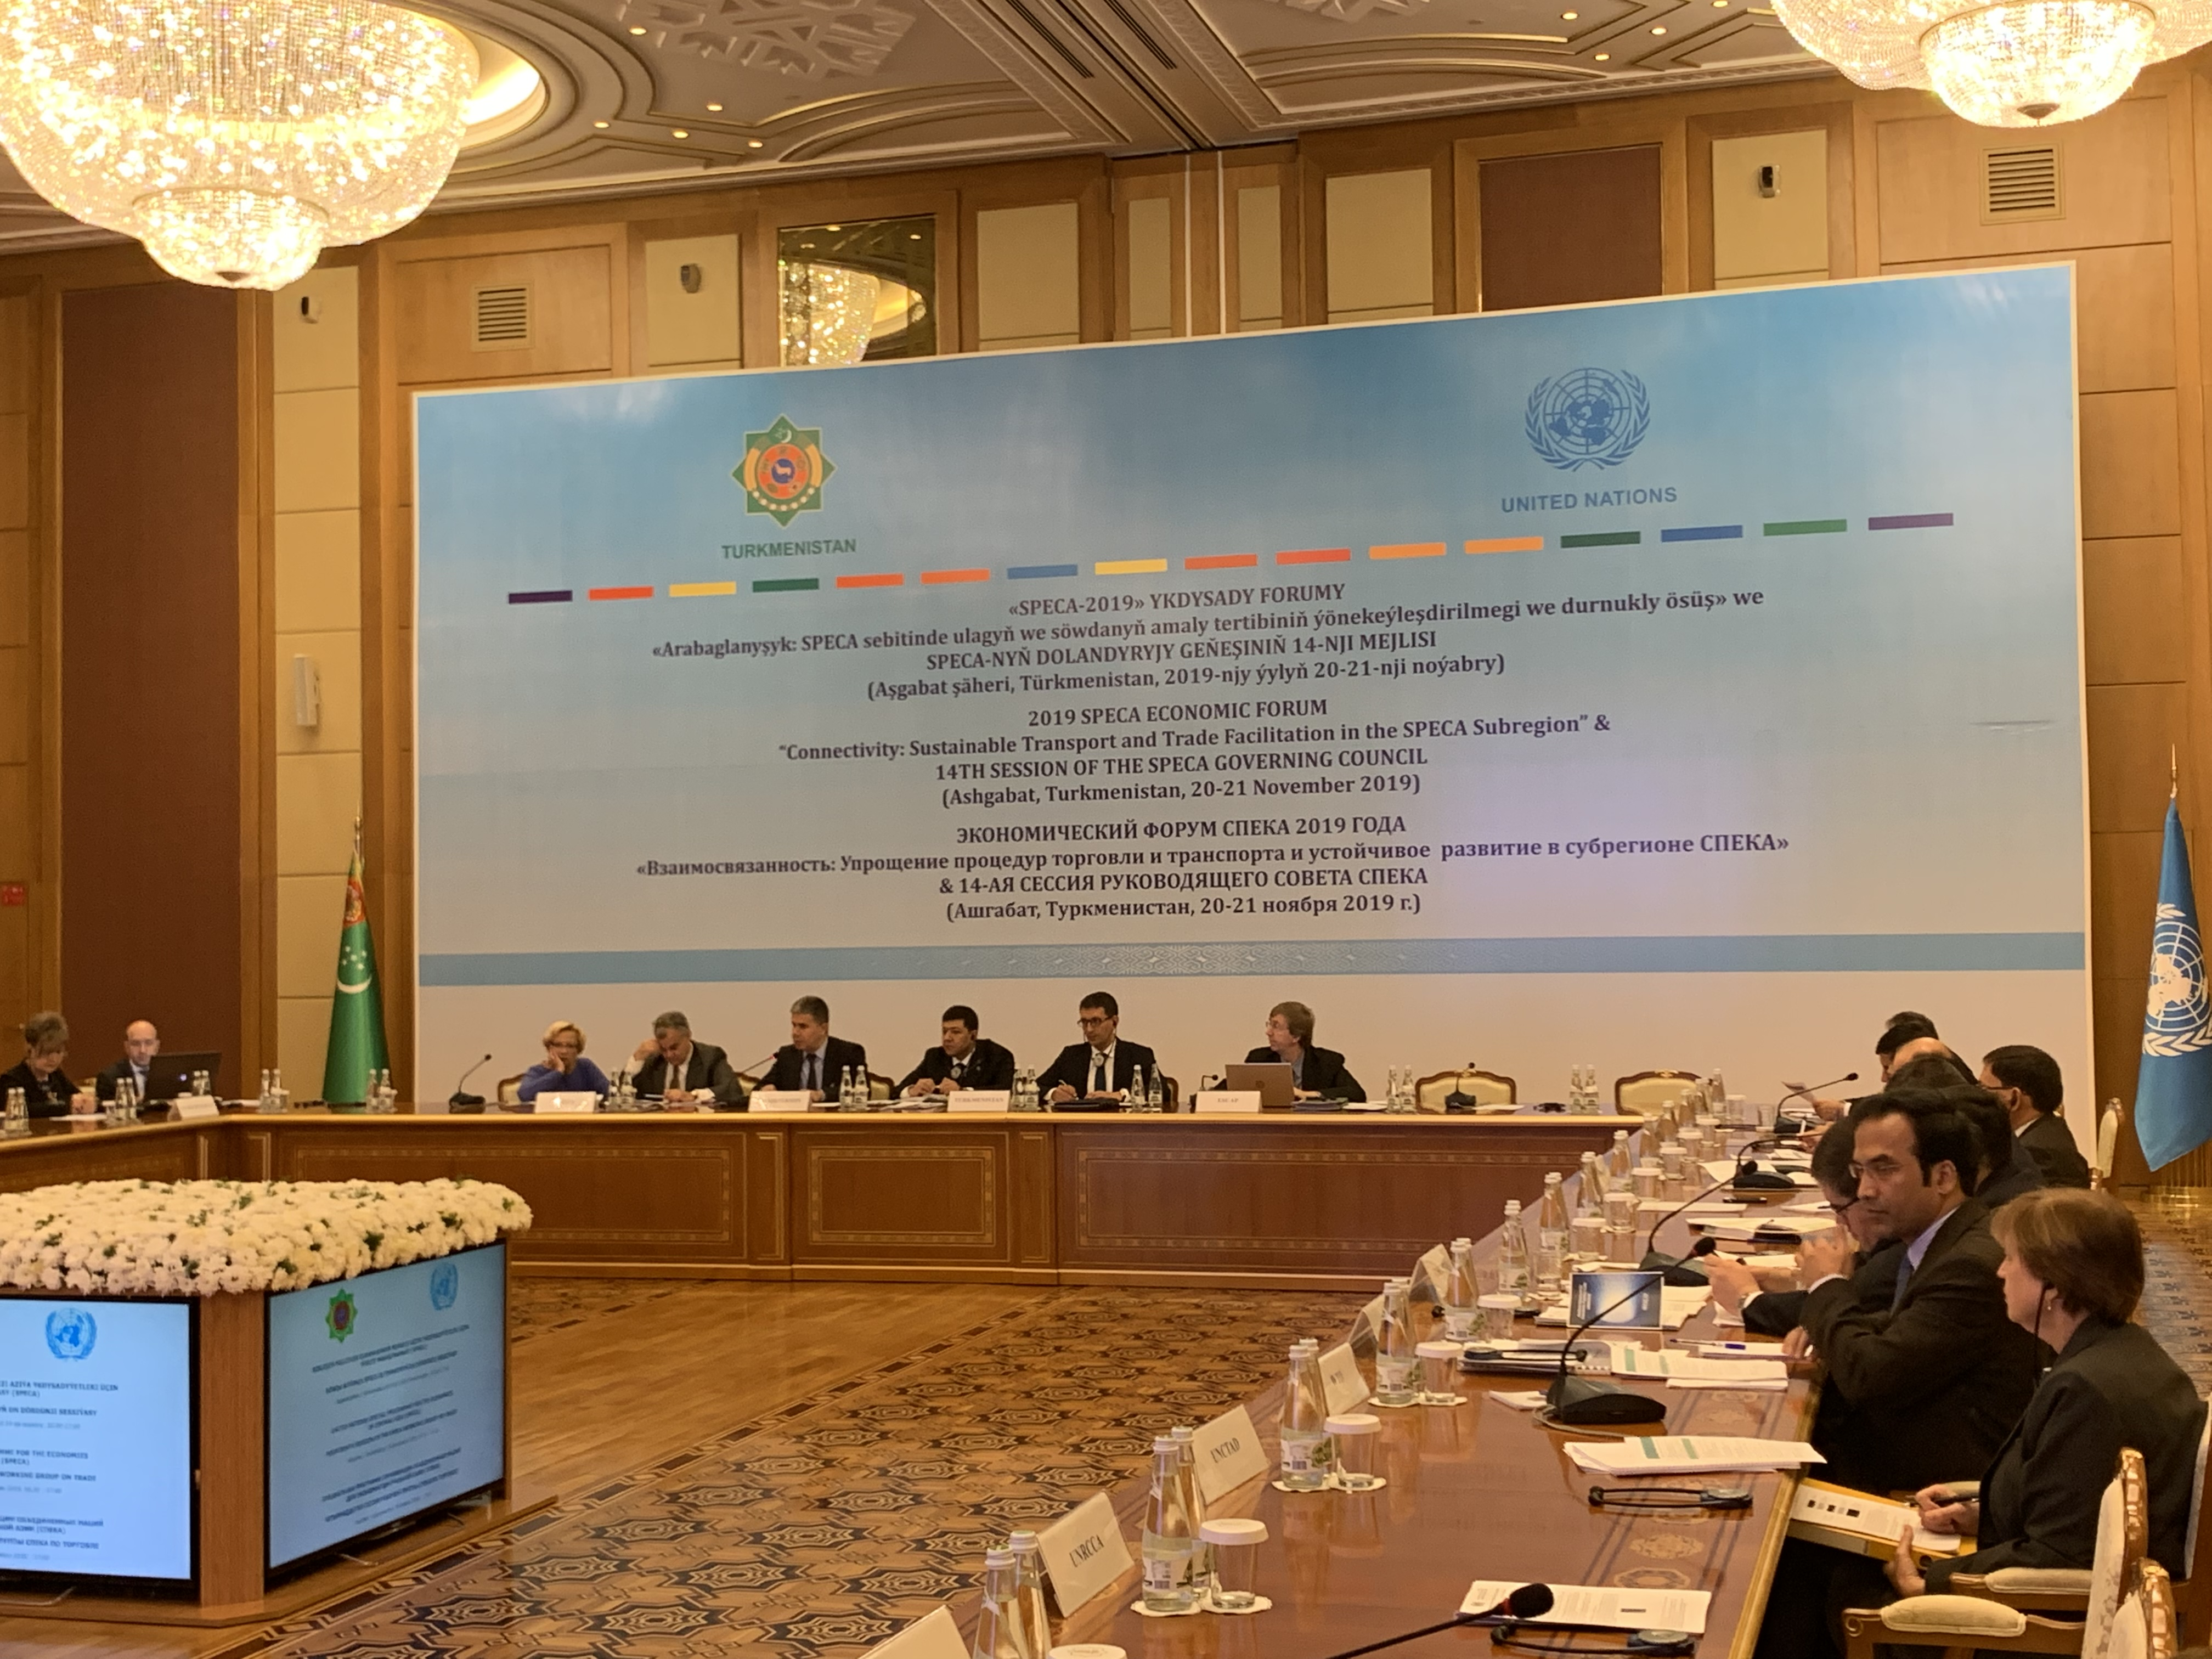 The 14th meeting of the Working Group on Trade of the UN Special Program for the Economies of Central Asia (SPECA) has been conducted under the leadership of the Republic of Tajikistan